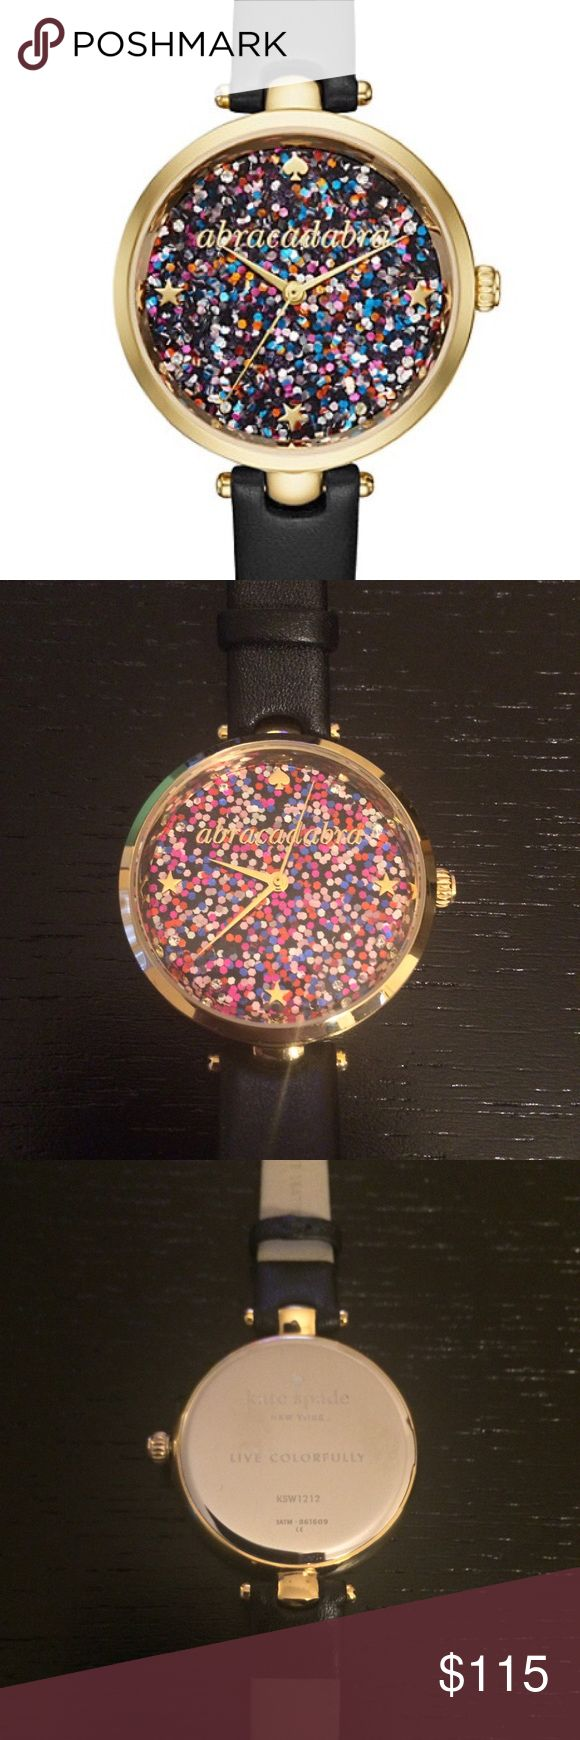 """Kate Spade Abracadabra Holland Skinny Watch Great condition, only worn a few times! Kate Spade Abracadabra Holland Skinny Watch. So cute!  Originally $195, selling for $115!  DESCRIPTION  add a little magic to every day. the gold-tone kate spade new york holland watch gleams with a multicolored glittering dial with """"abracadabra"""" in gold-tone script, star and crystal indexes and a sleek black leather strap.   MATERIAL shiny stainless steel with black strap FEATURES glossy gold dial water…"""